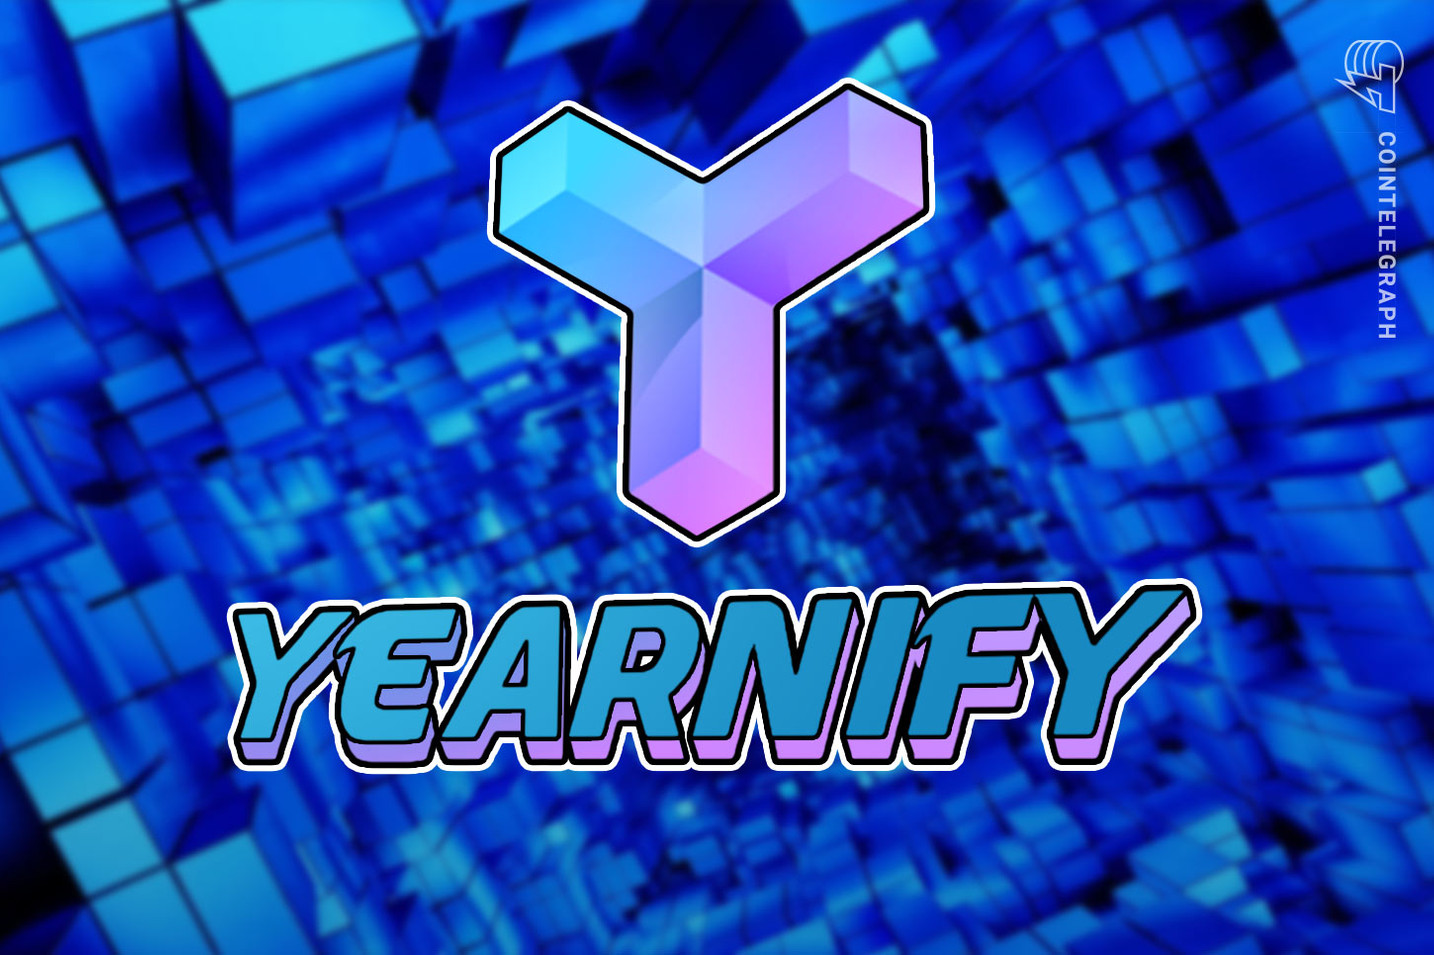 Yearnify Finance (YFY) — Powerful DeFi project aims to improve on YFI